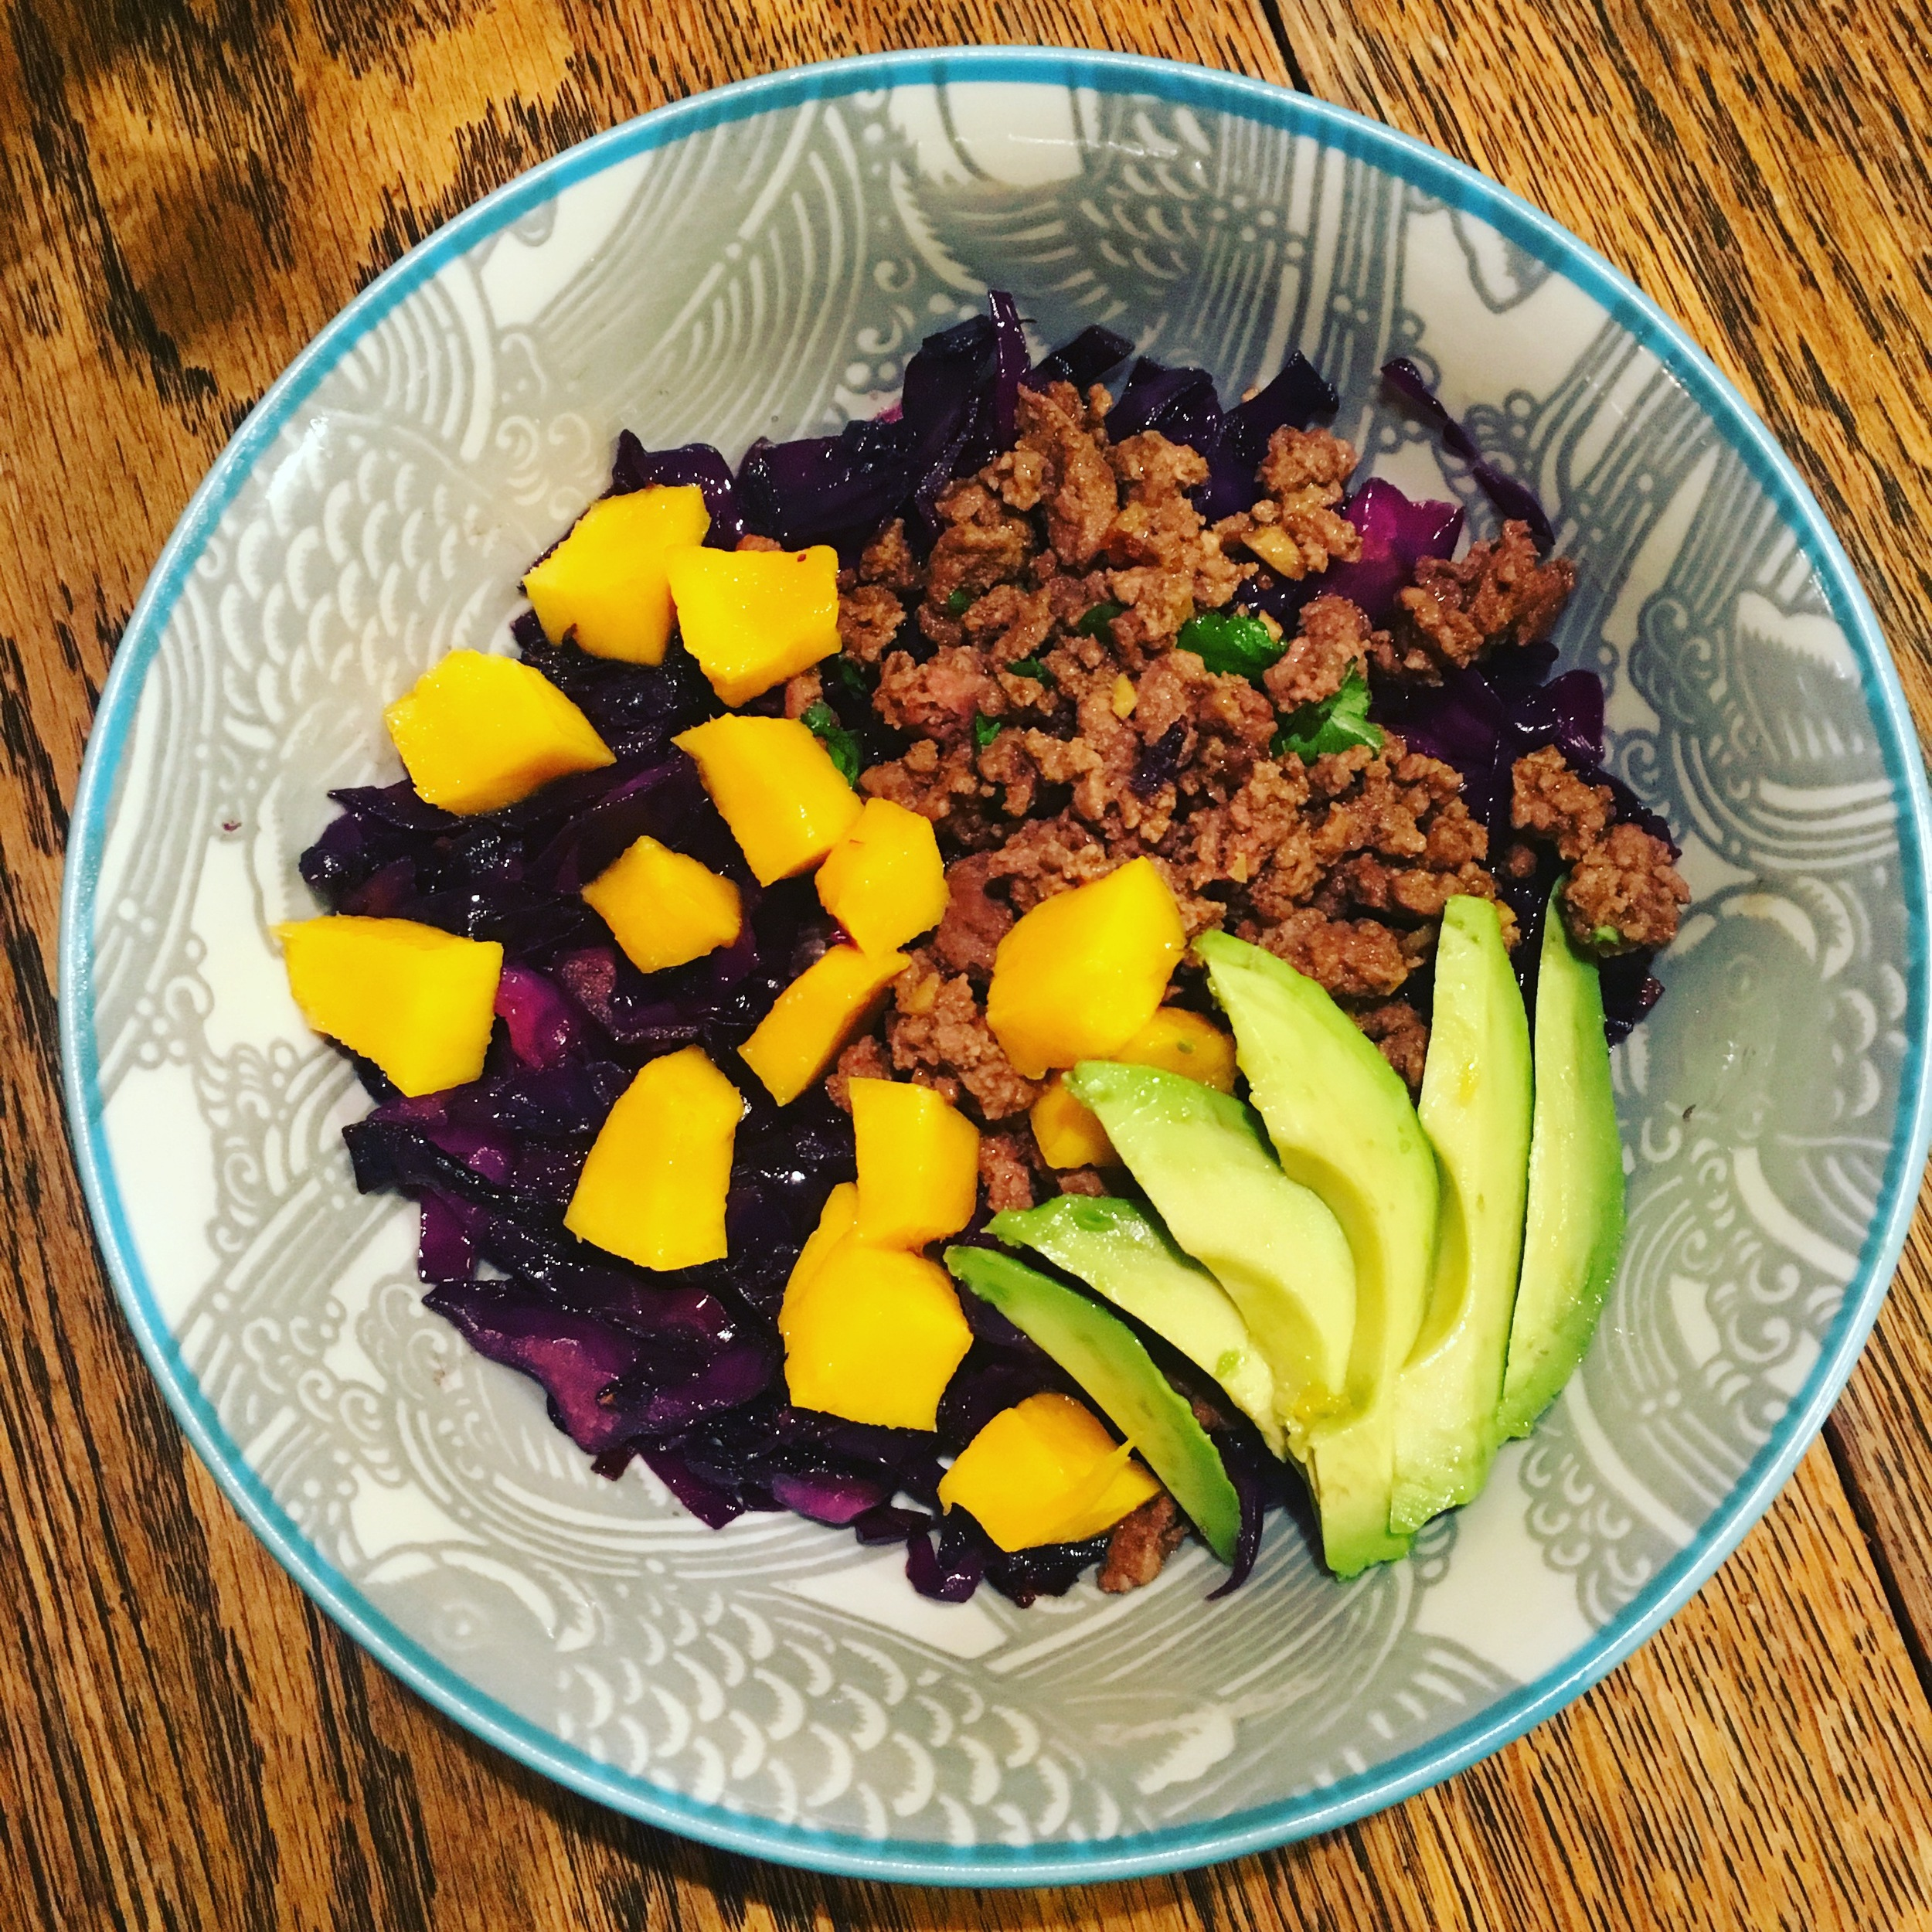 Thai seasoned beef bowl, with braised cabbage, avocado and mango #eattherainbow